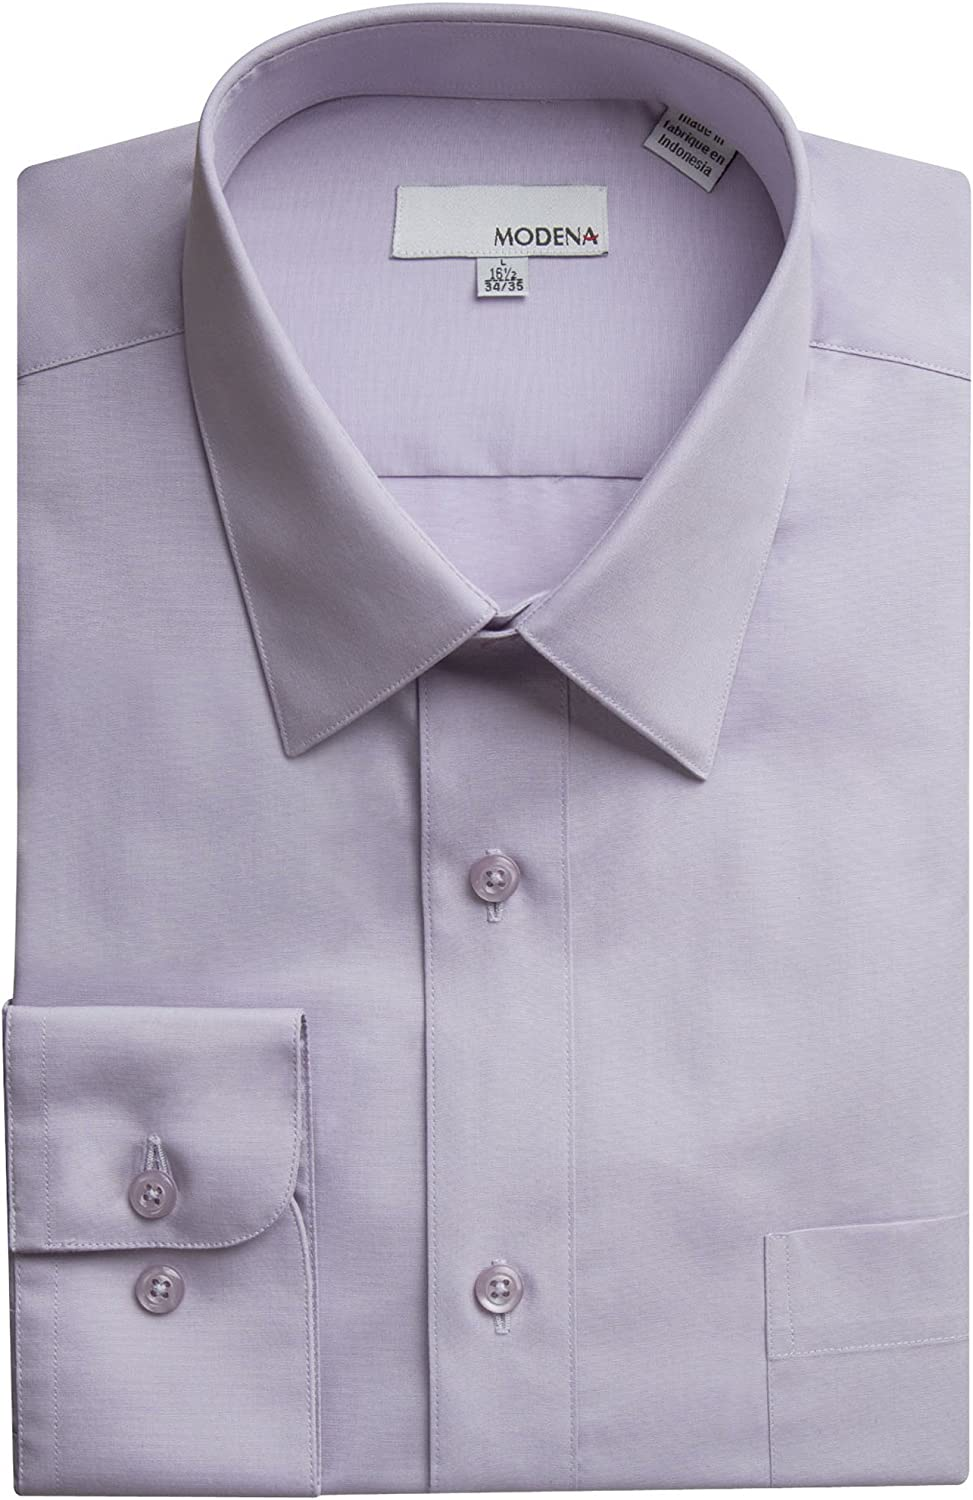 Modena Men/'s Regular /& Contemporary Fit Long Sleeve Solid Dress Shirt All Sizes Slim Colors